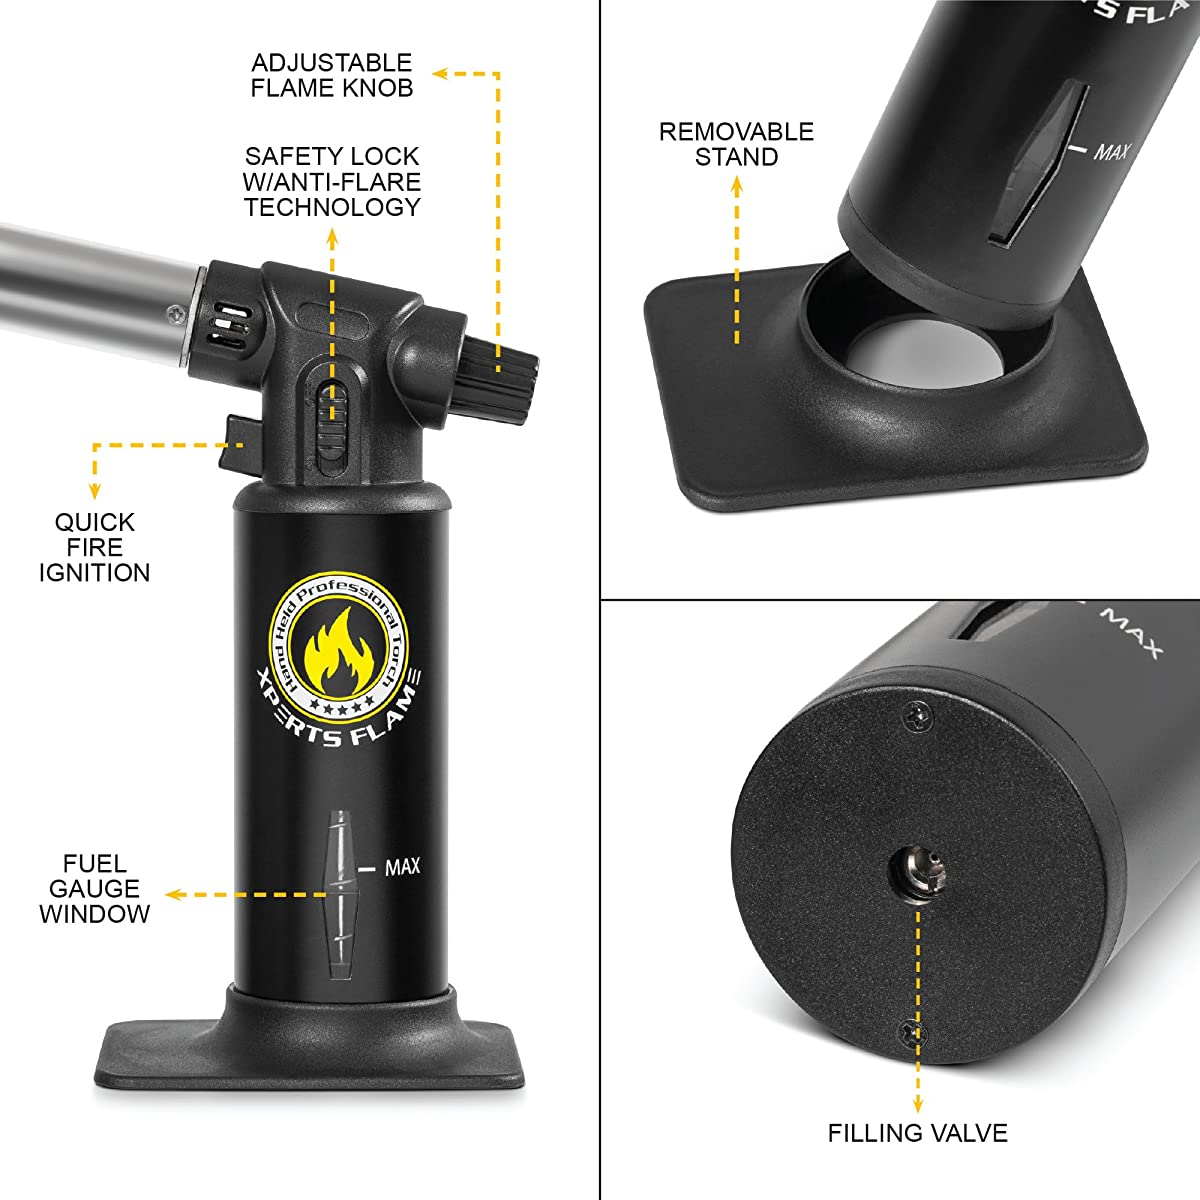 Kitchen Torch | Culinary Torch For Creme Brulee | Butane Blow Torch For Home & Pro Chefs | Safety Lock & Adjustable Flame | Free Bonus: Stand & BBQ Recipe E-Books | By XPERT'S FLAME. (BLACK)